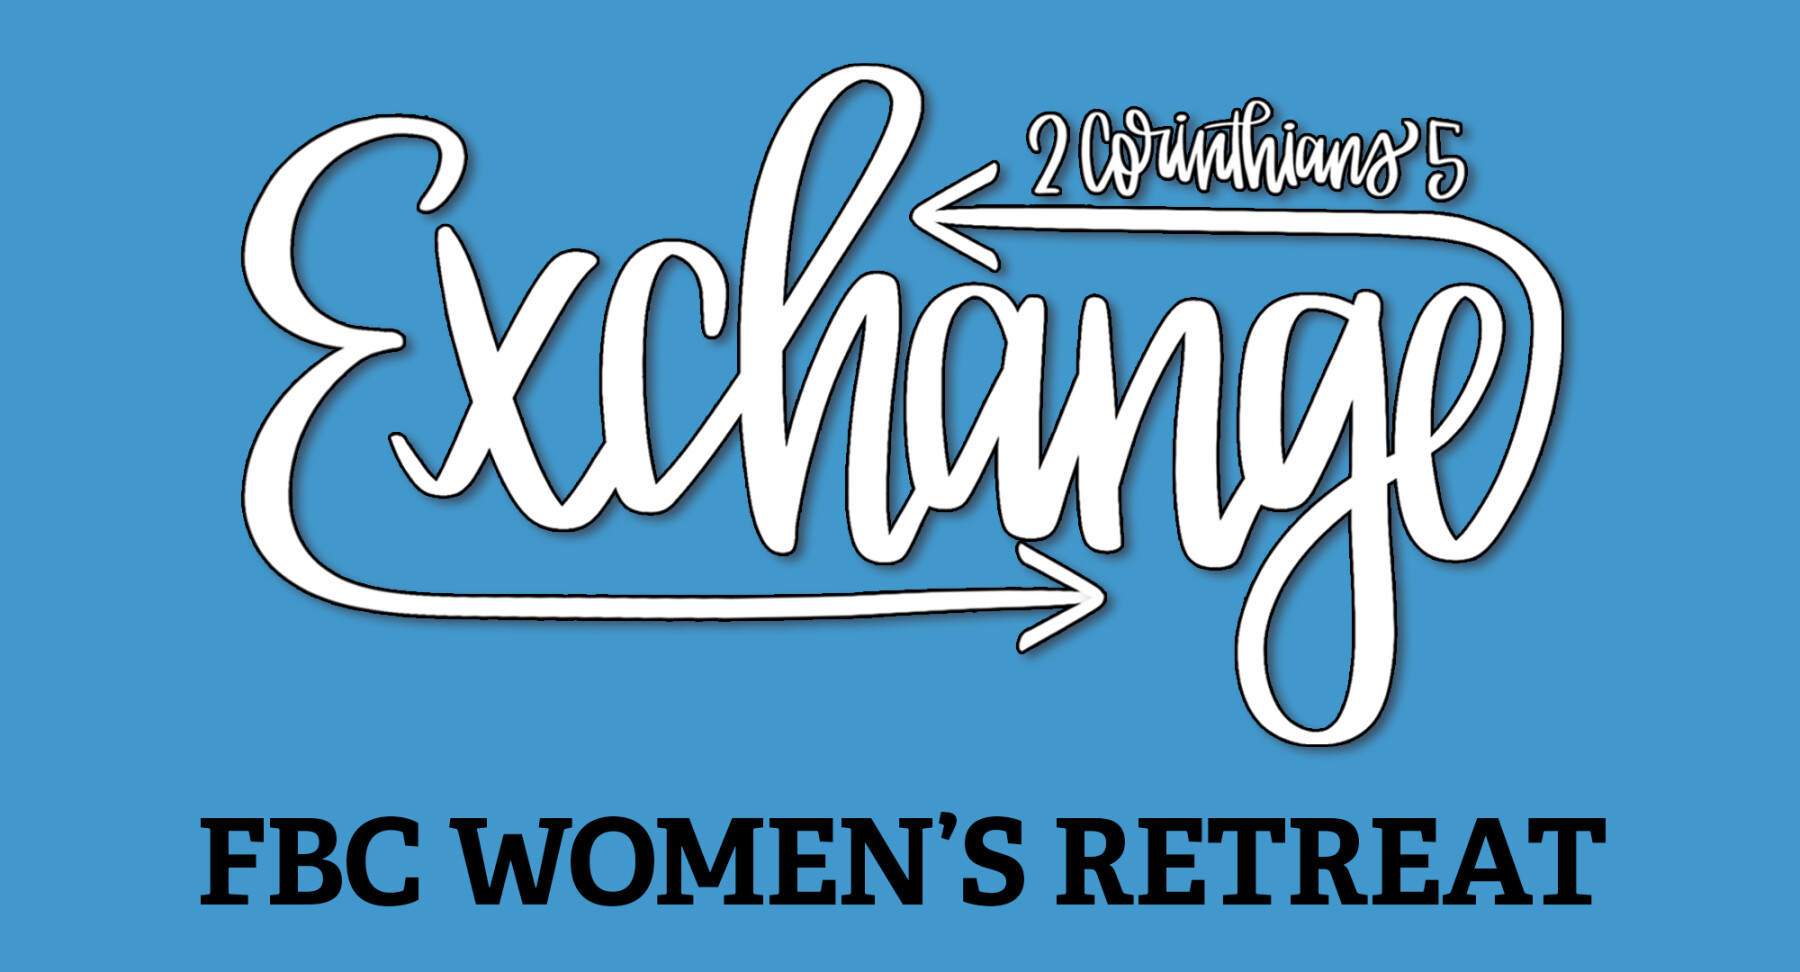 Exchange: Women's Retreat